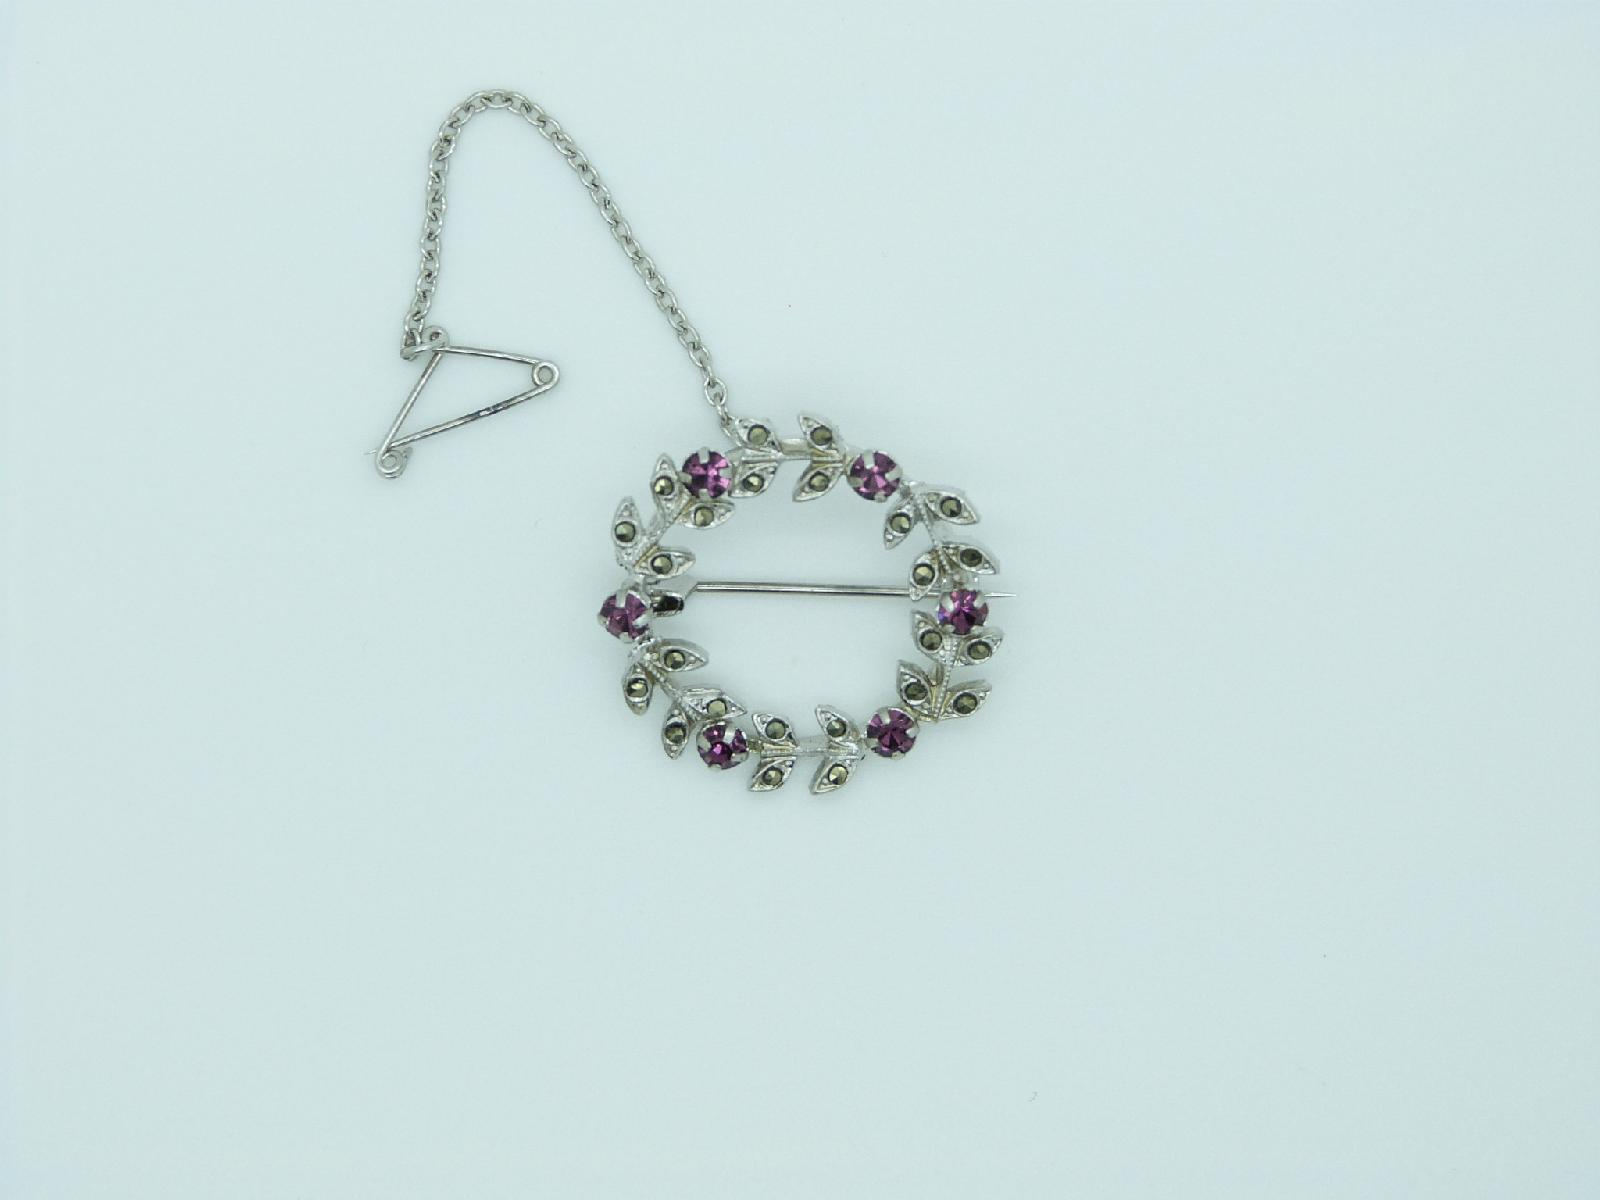 £10.00 - Vintage 50s Marcasite and Purple Diamante Silvertone Garland Brooch with Safety Chain 3cms